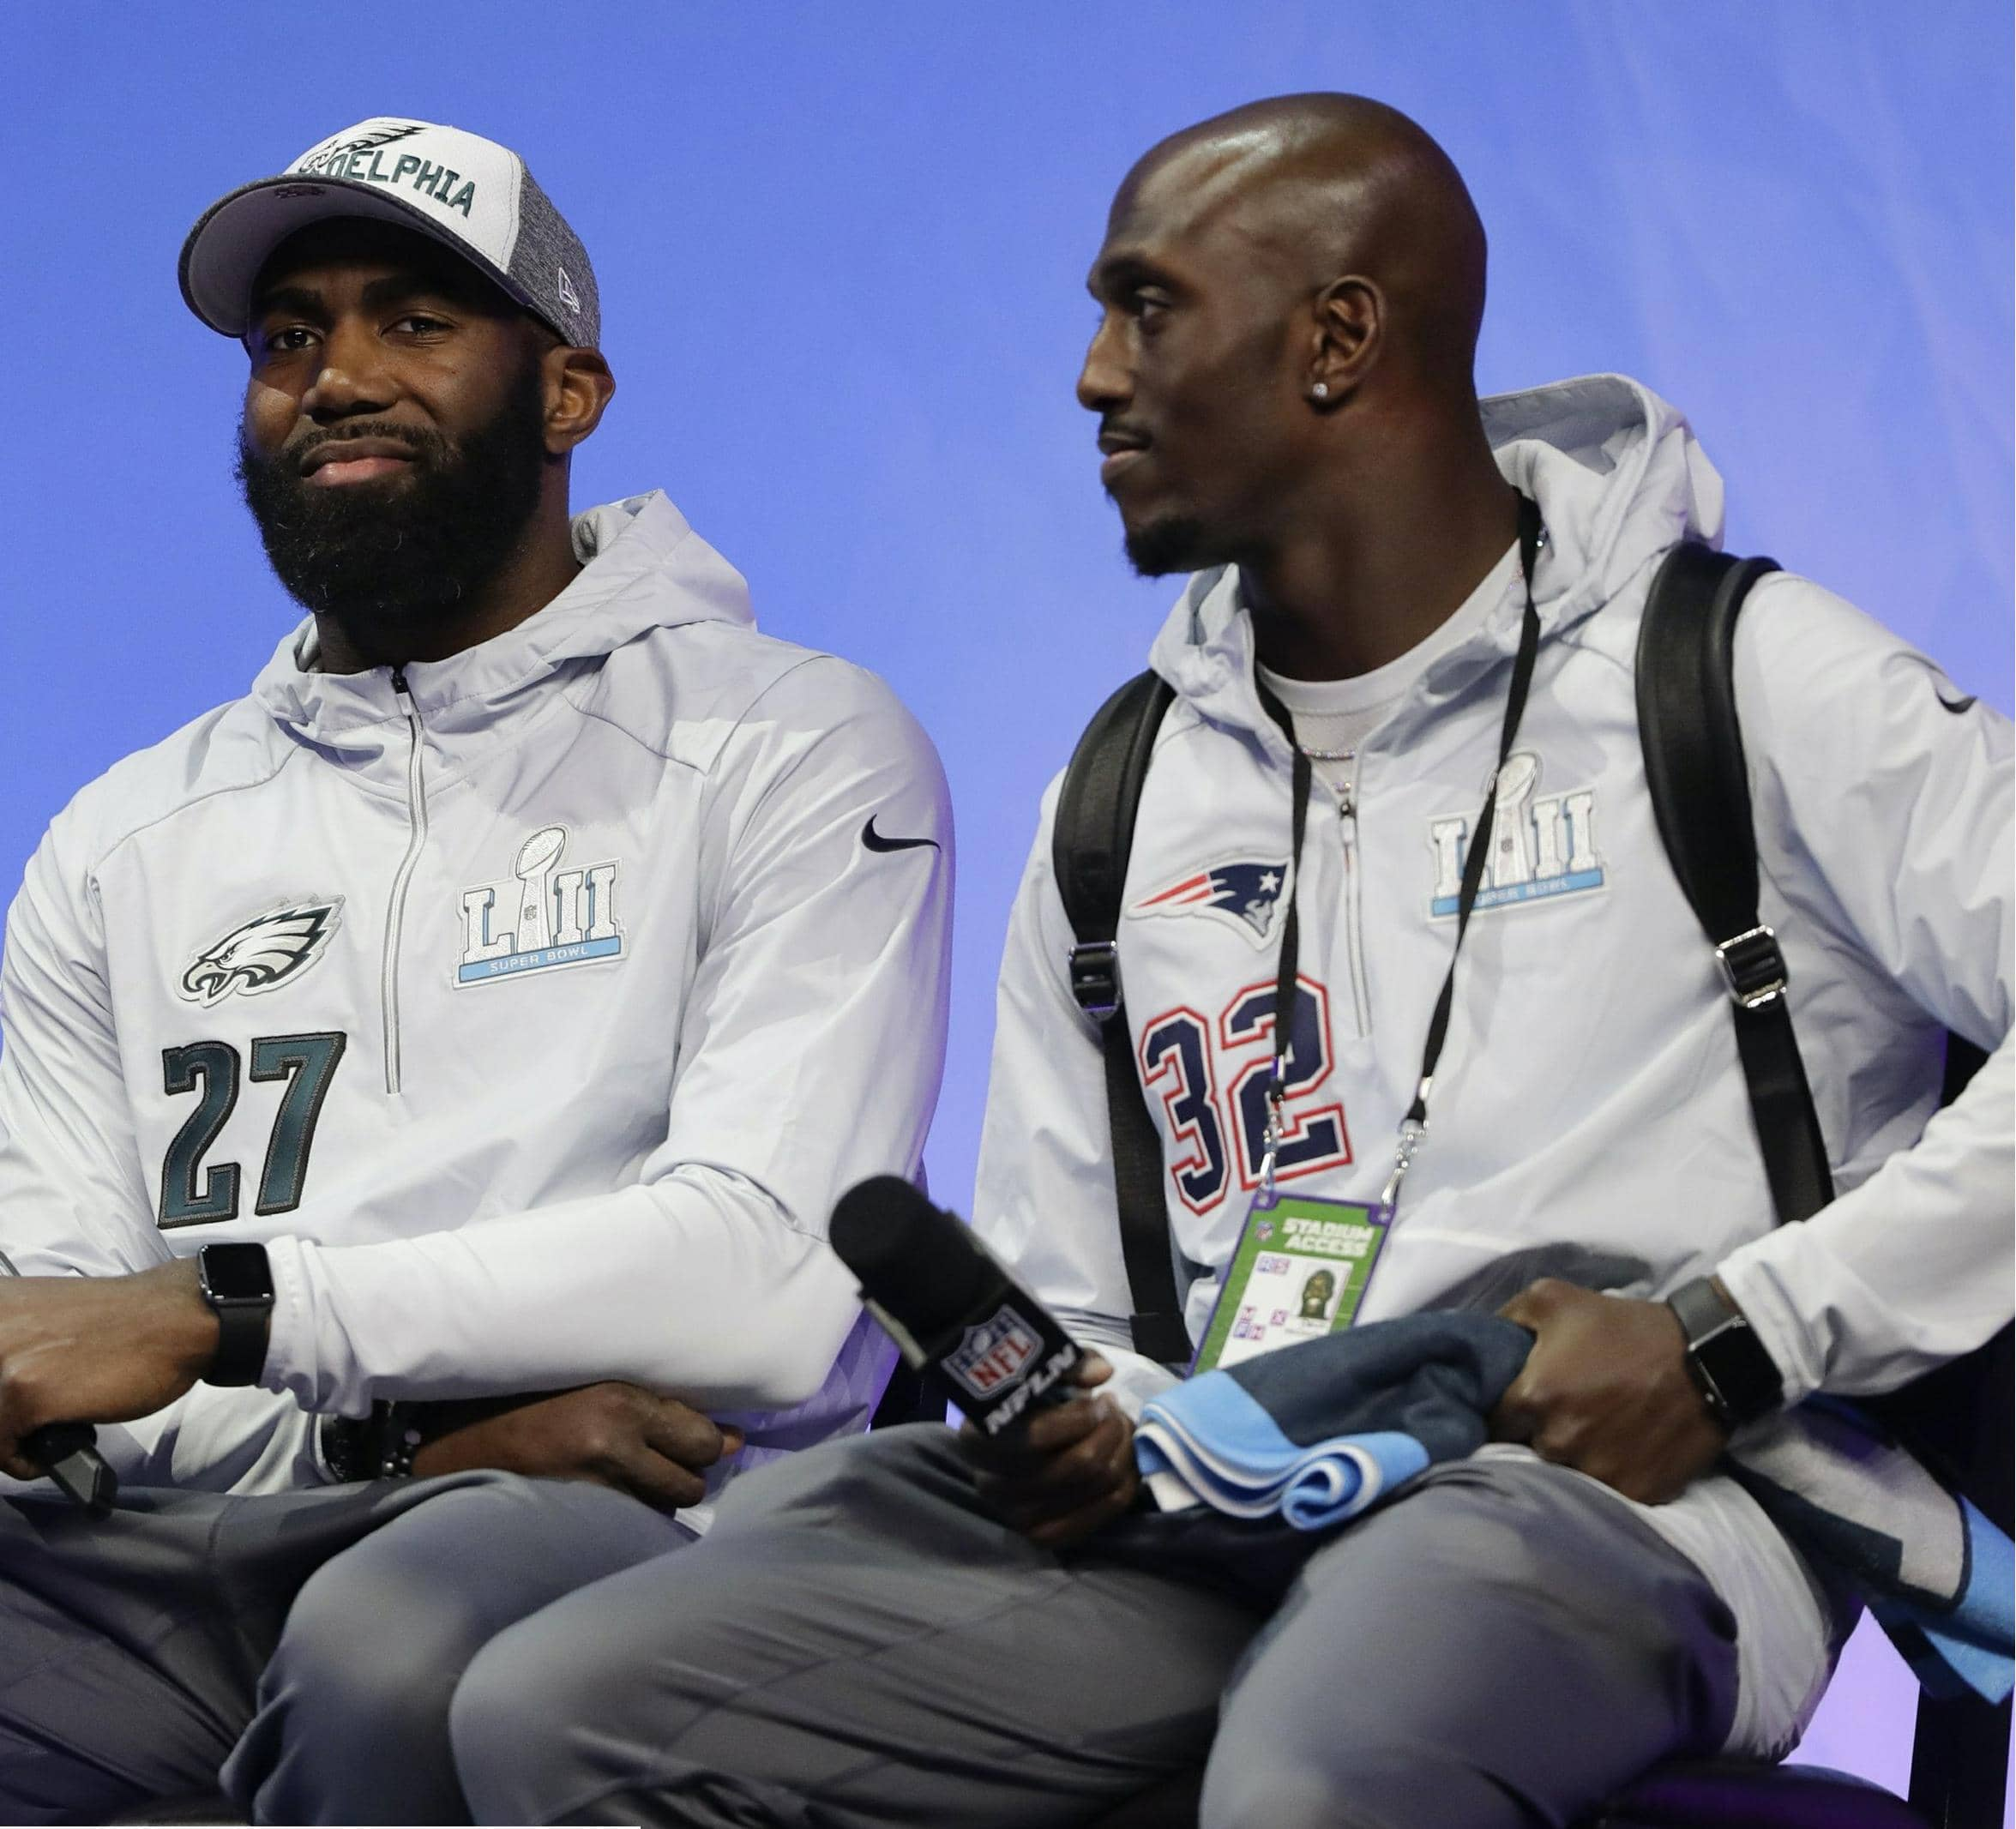 MALCOLM JENKINS STARTS VENTURE CAPITAL FUND WITH NFL PLAYERS